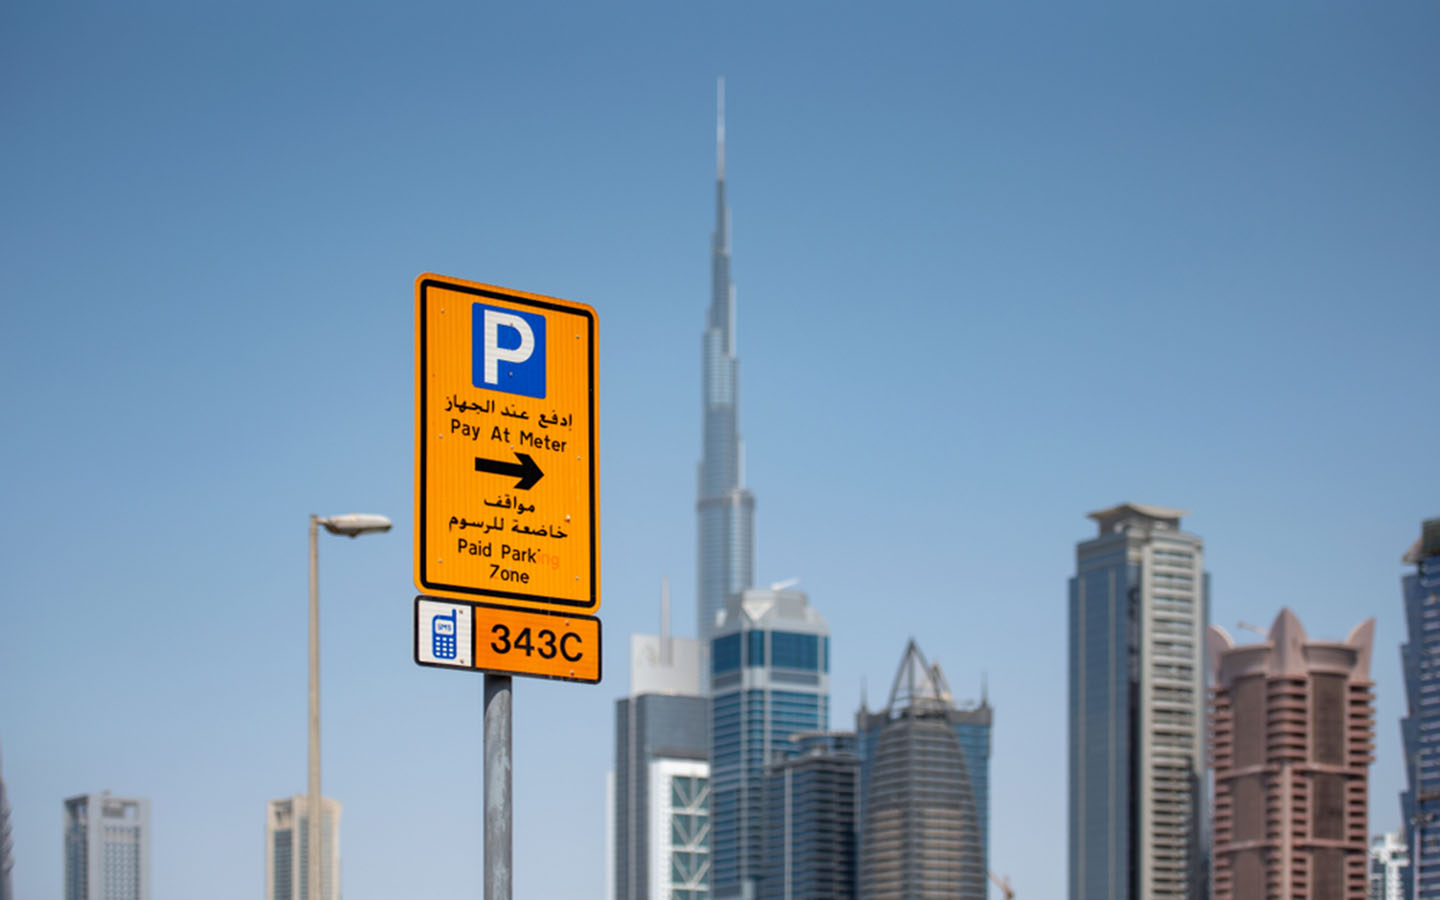 Sign for Paid parking zones in Dubai - Parking rates in Dubai